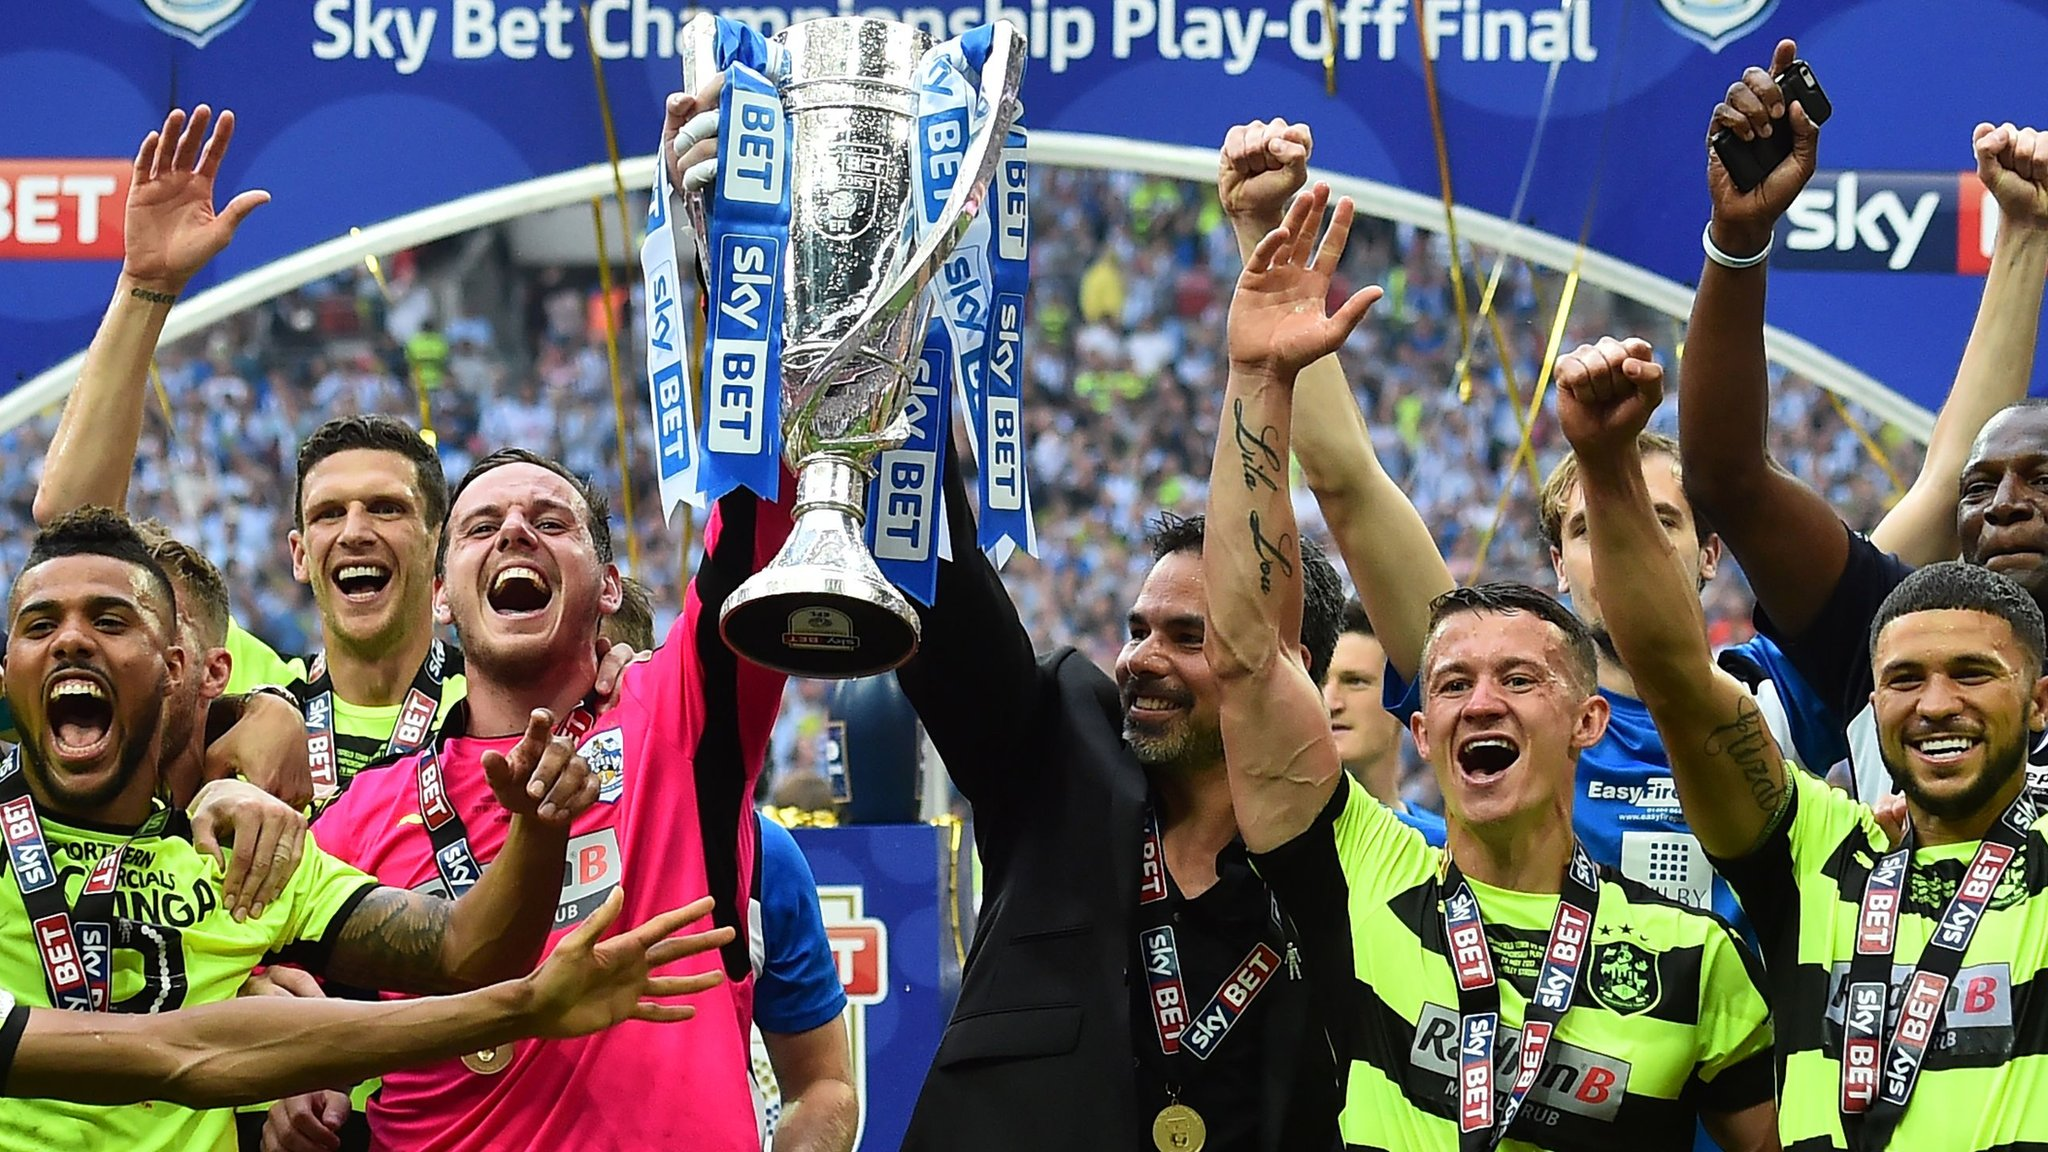 Aston Villa v Fulham: Championship play-off final 'worth £160m' to winners